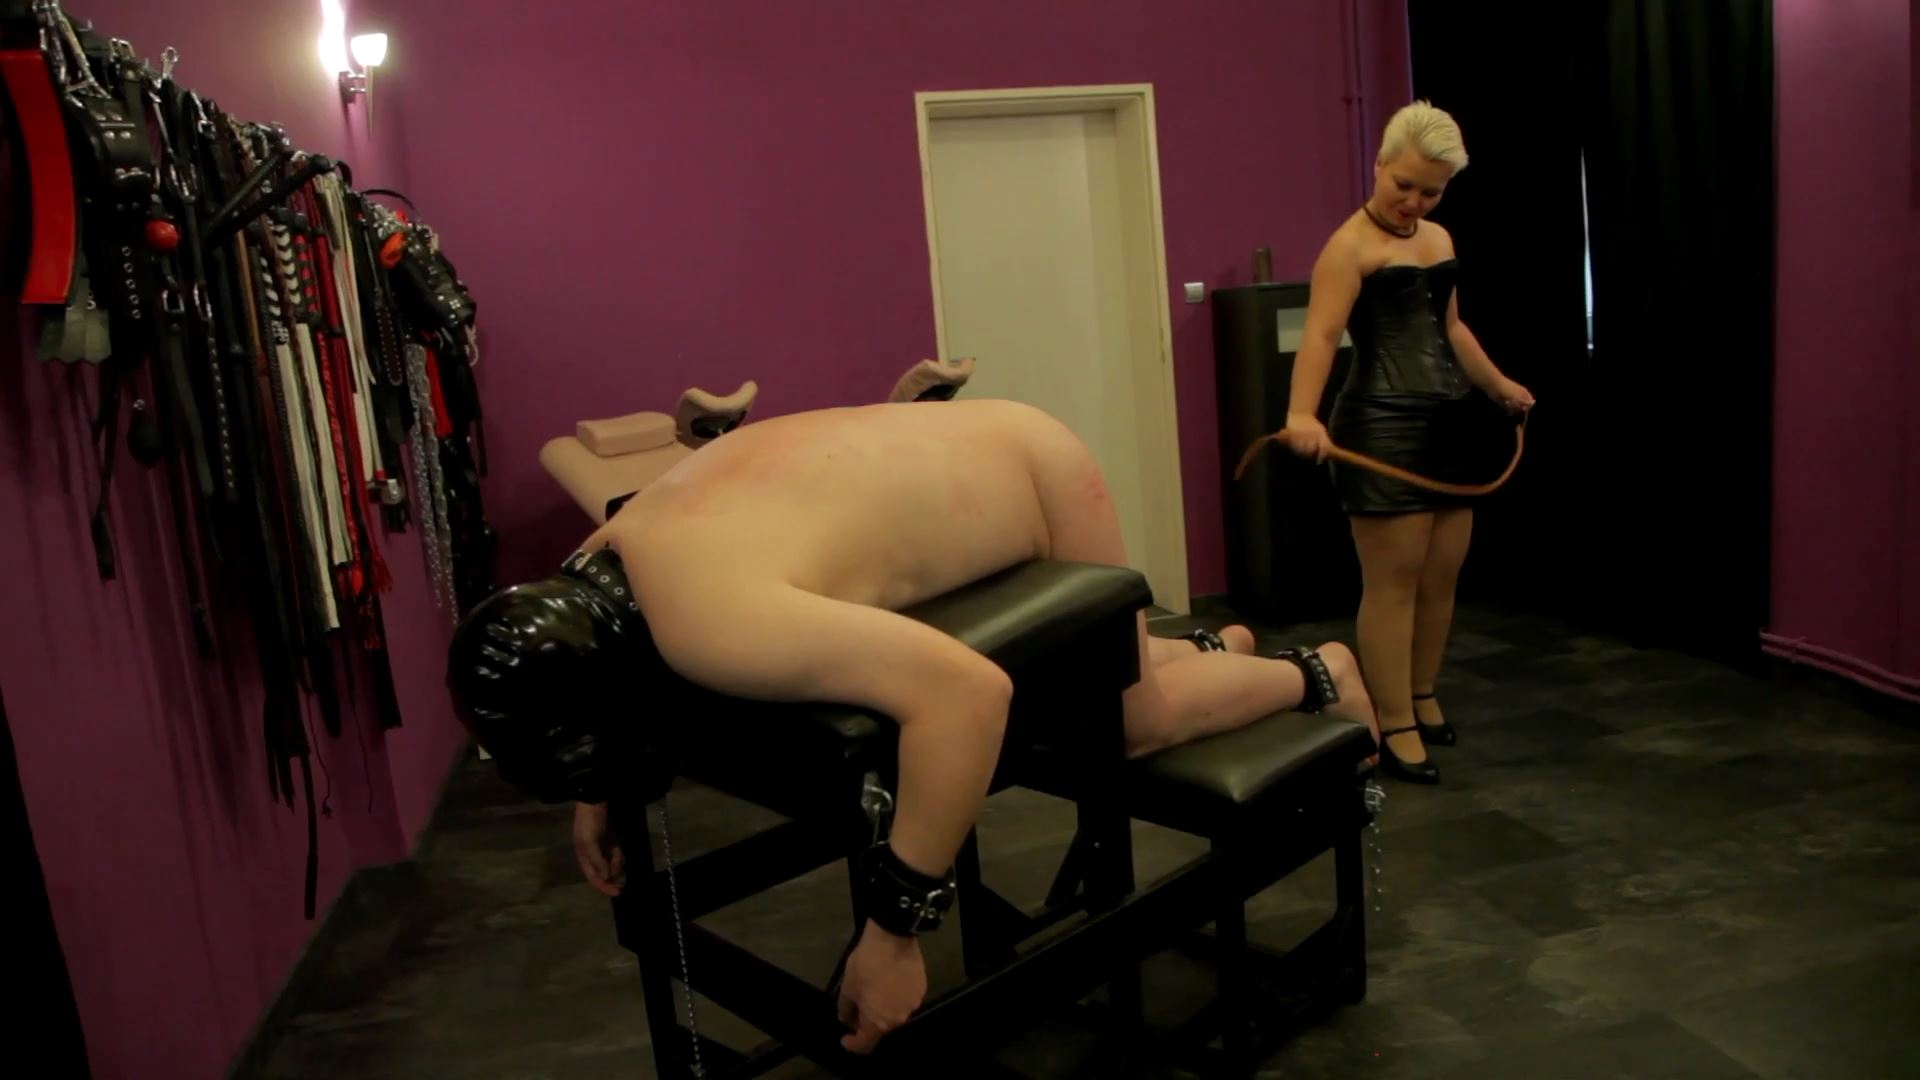 Lady Susan In Scene: Cries of a victim - ERONITE-FEMDOM - FULL HD/1080p/MP4